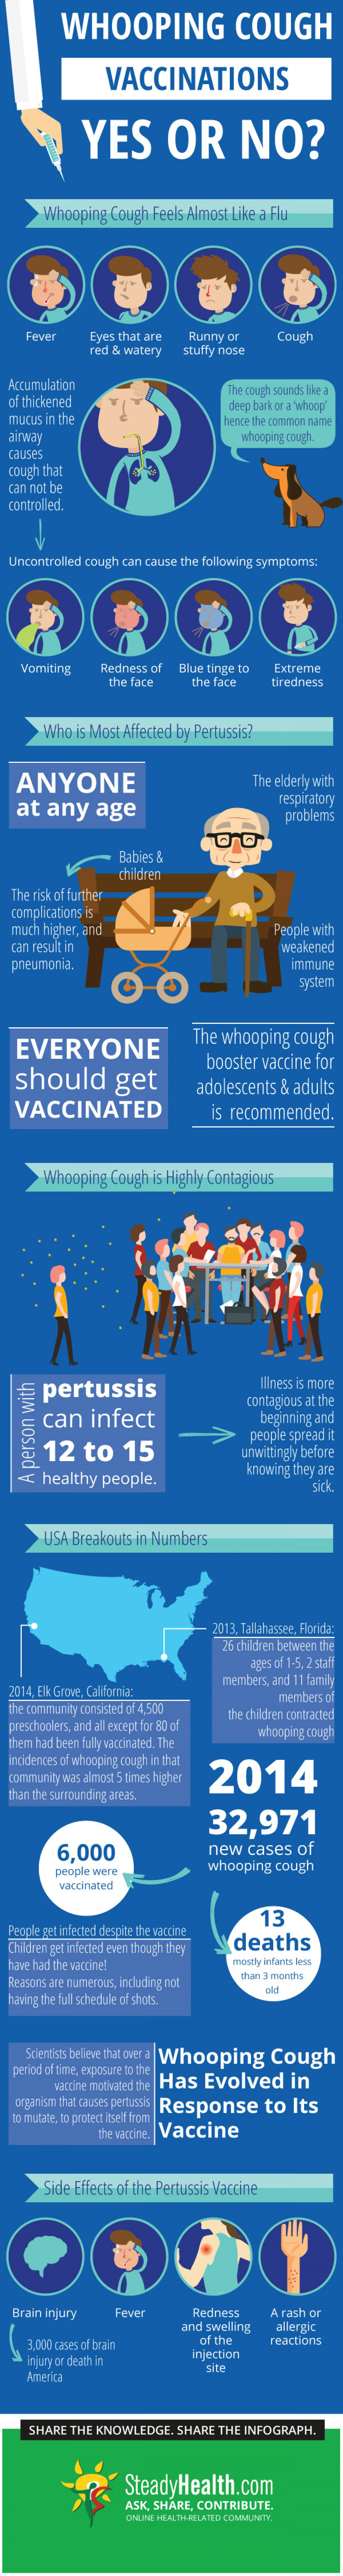 Whooping Cough And The Great Vaccination Debate Infographic